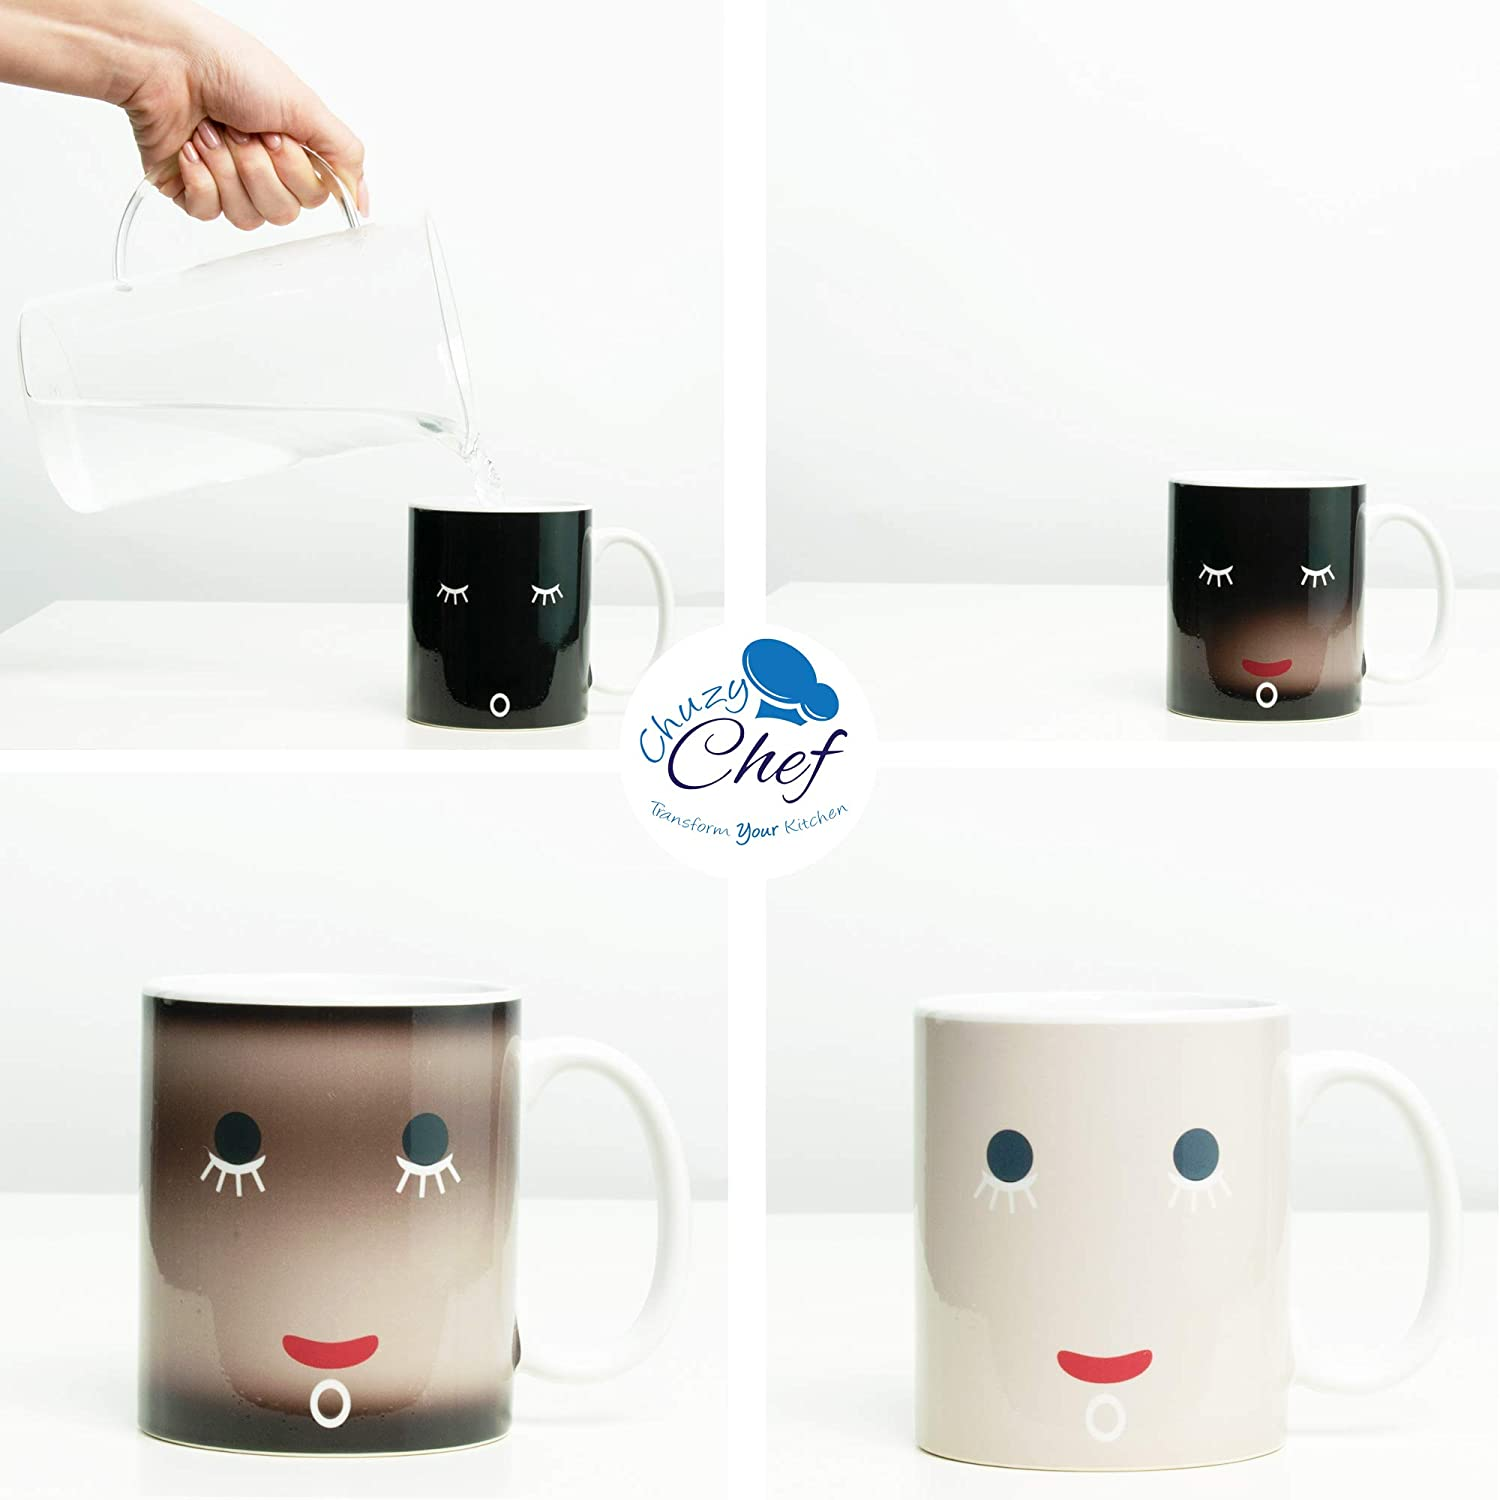 Magic Coffee /& Tea Cool Heat Changing Sensitive Cup 12 oz White Cute Face Design Drinkware Ceramic Mugs Morning Birthday Christmas Gift Idea for Mom Dad Women /& Men Unique Color Changing Funny Mug